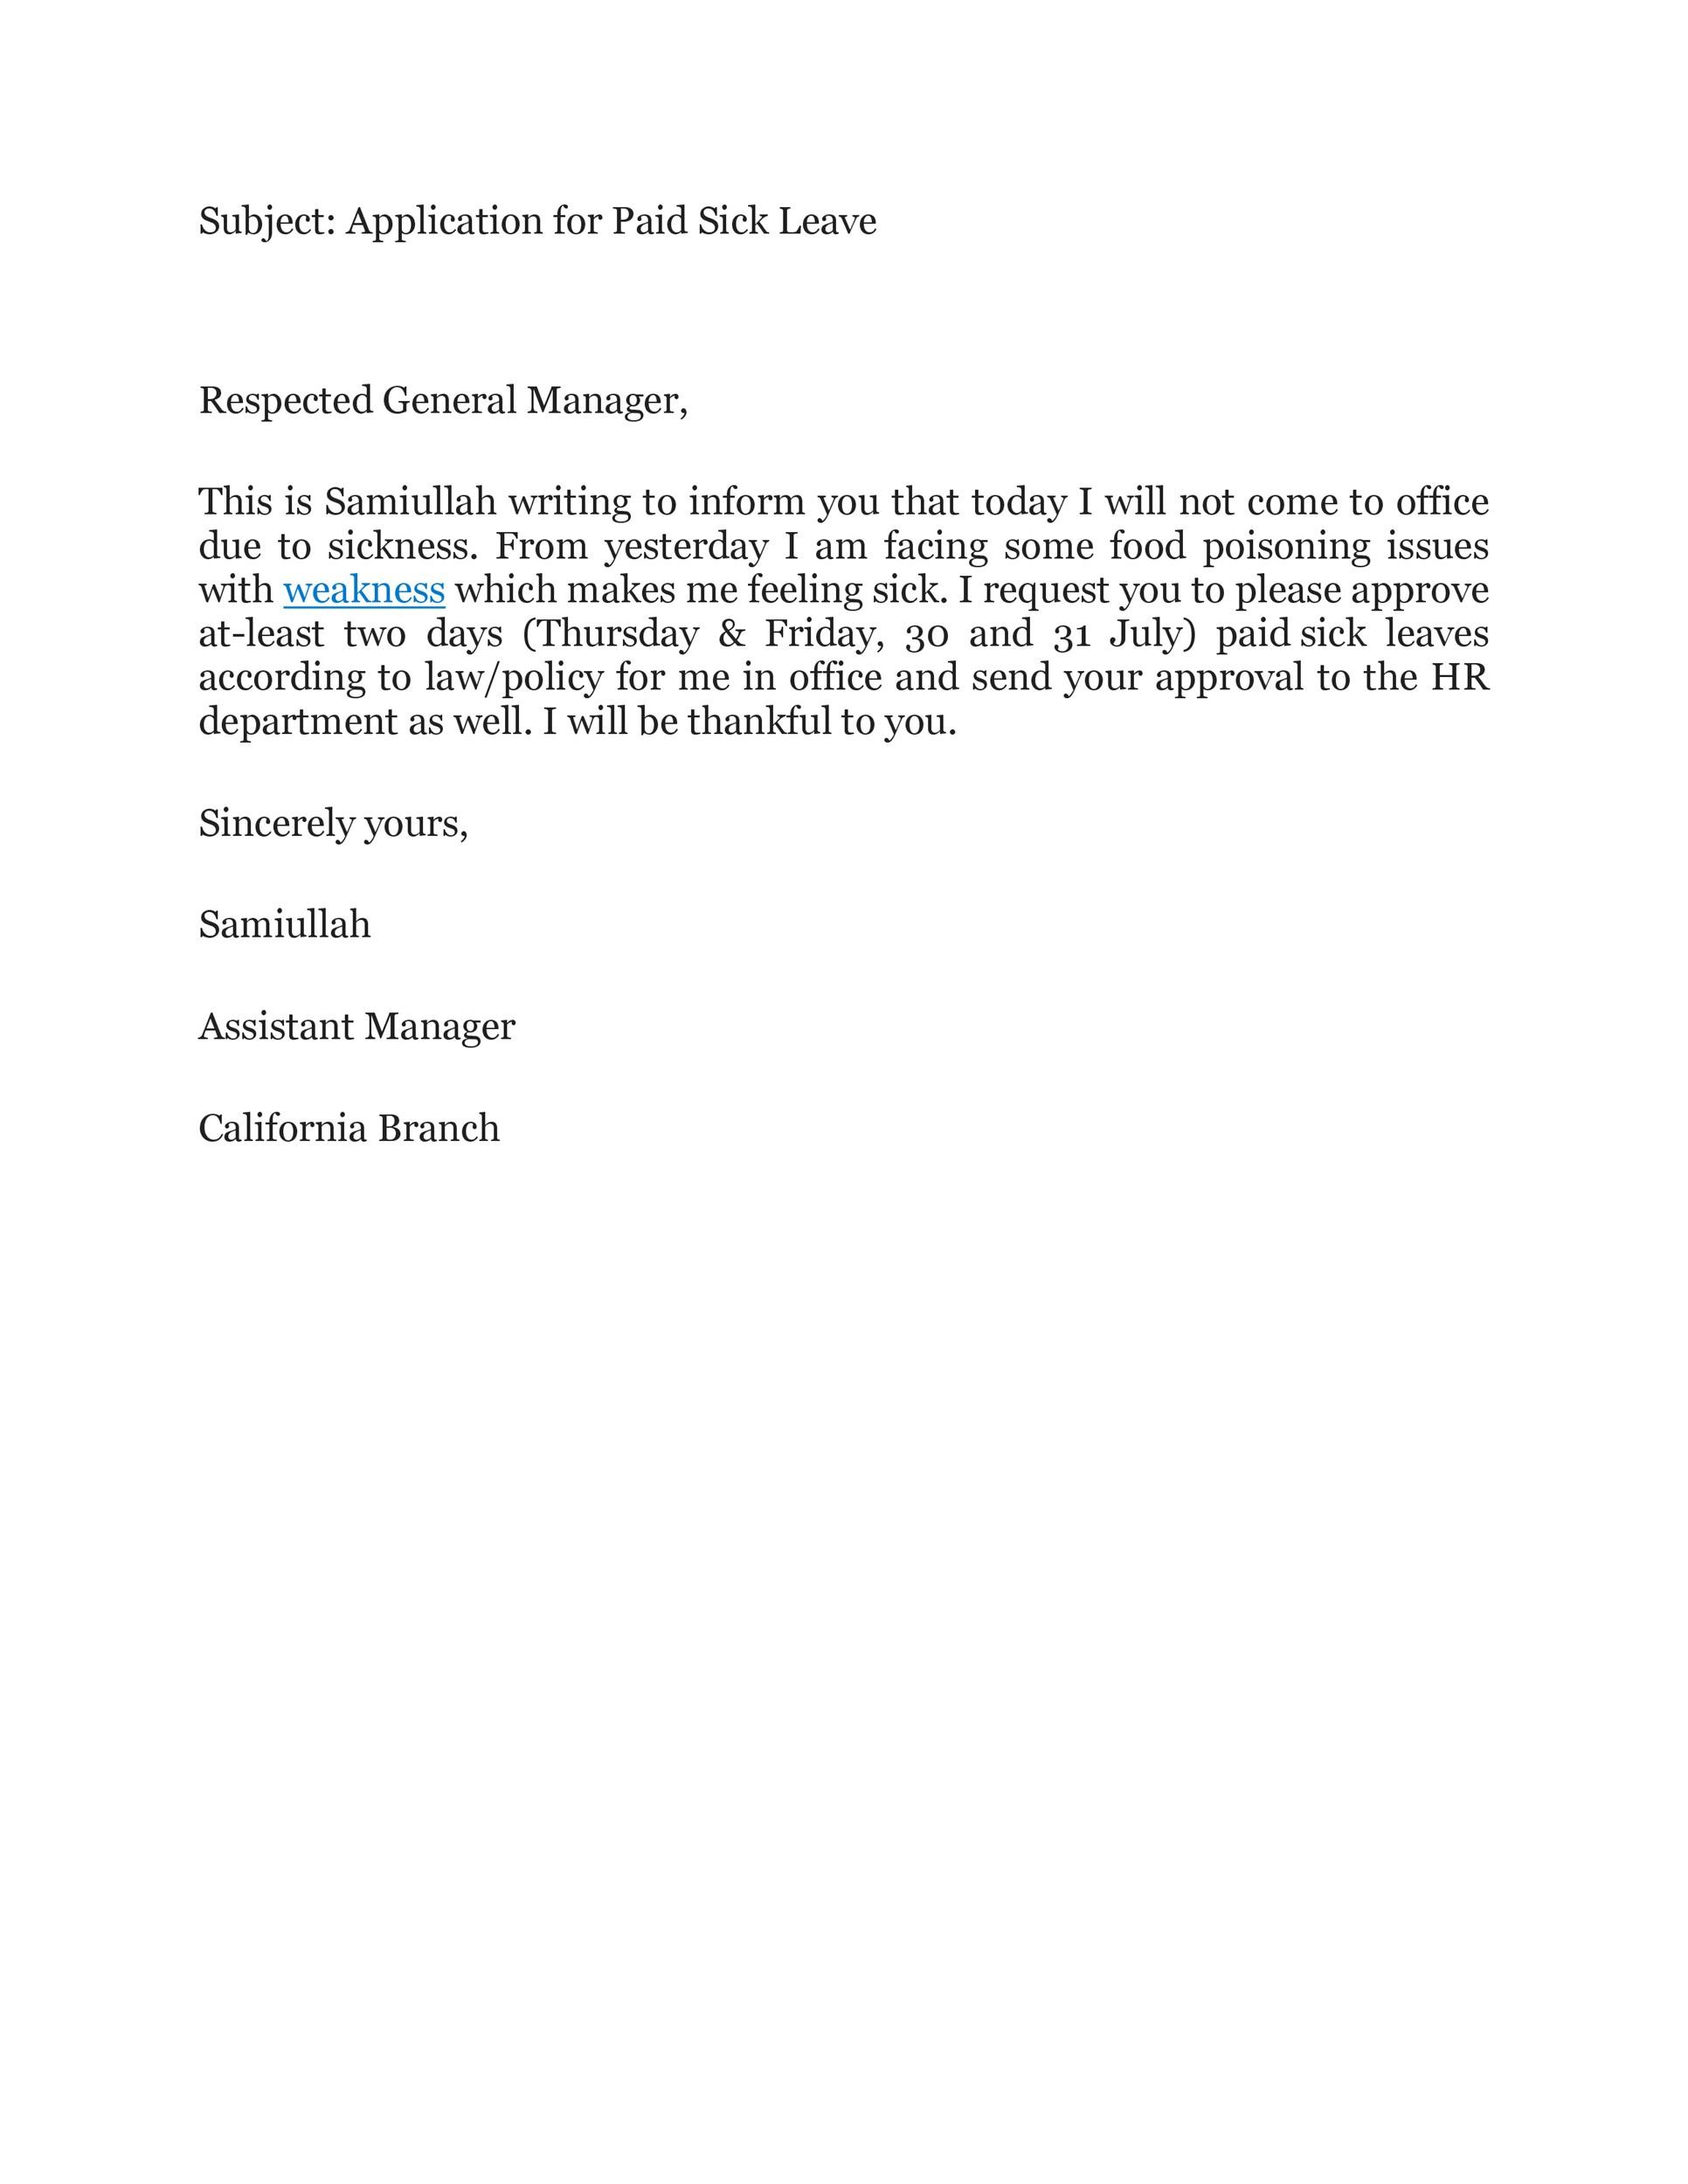 Free sick leave email 37